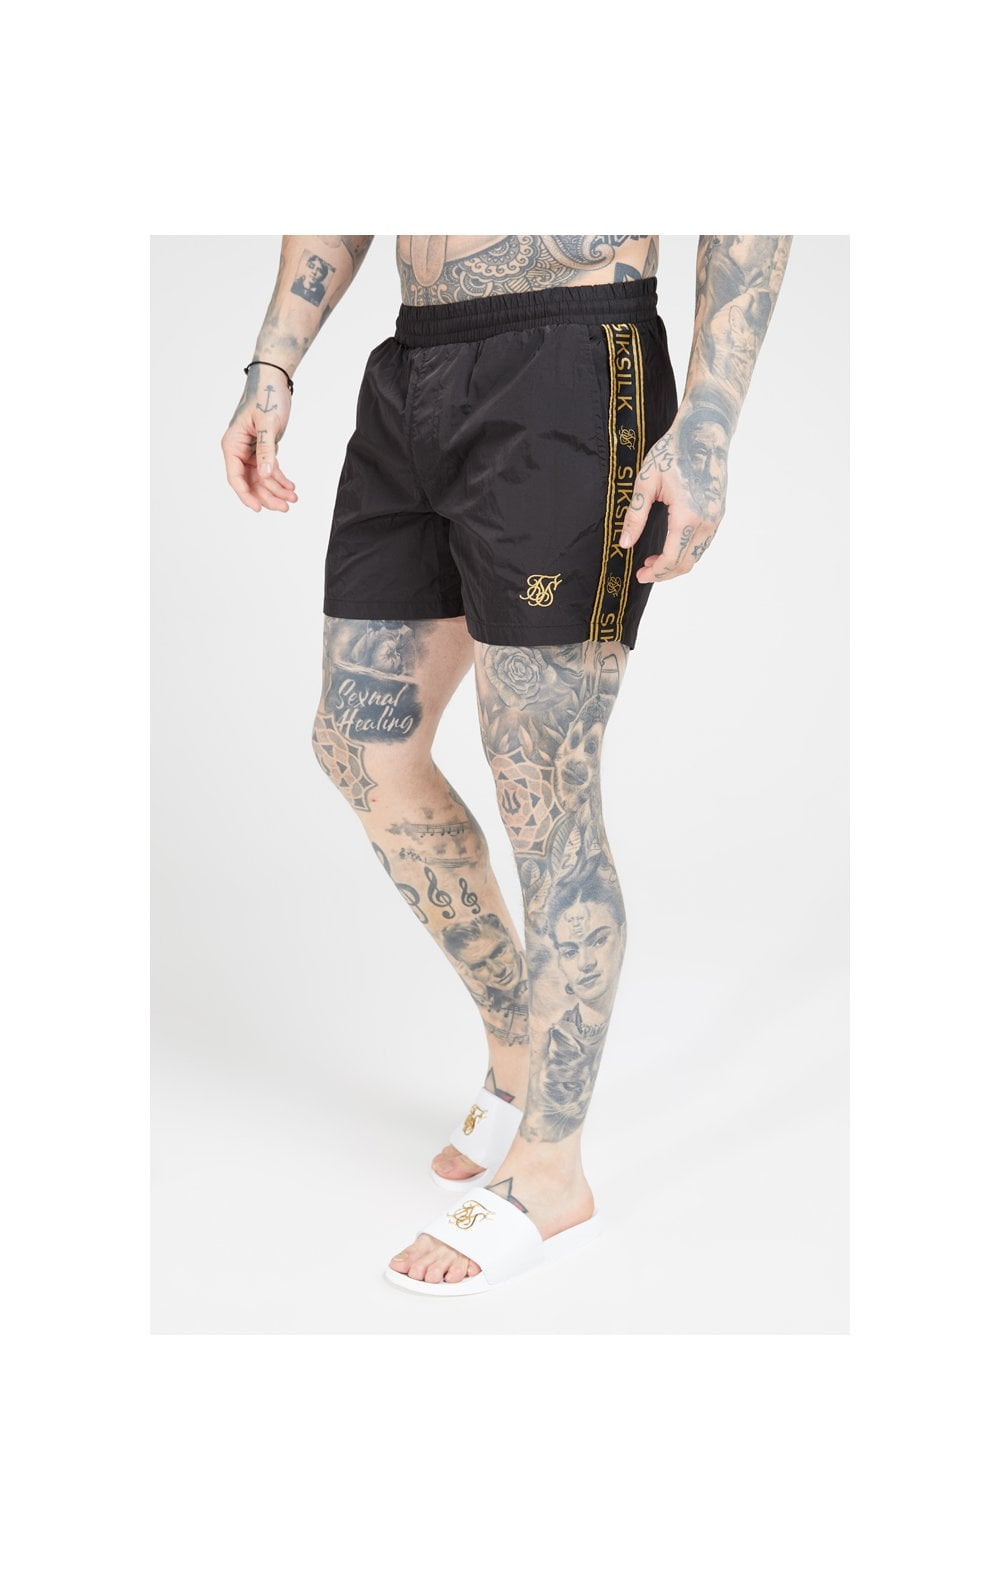 SikSilk Crushed Nylon Tape Shorts – Black & Gold (1)